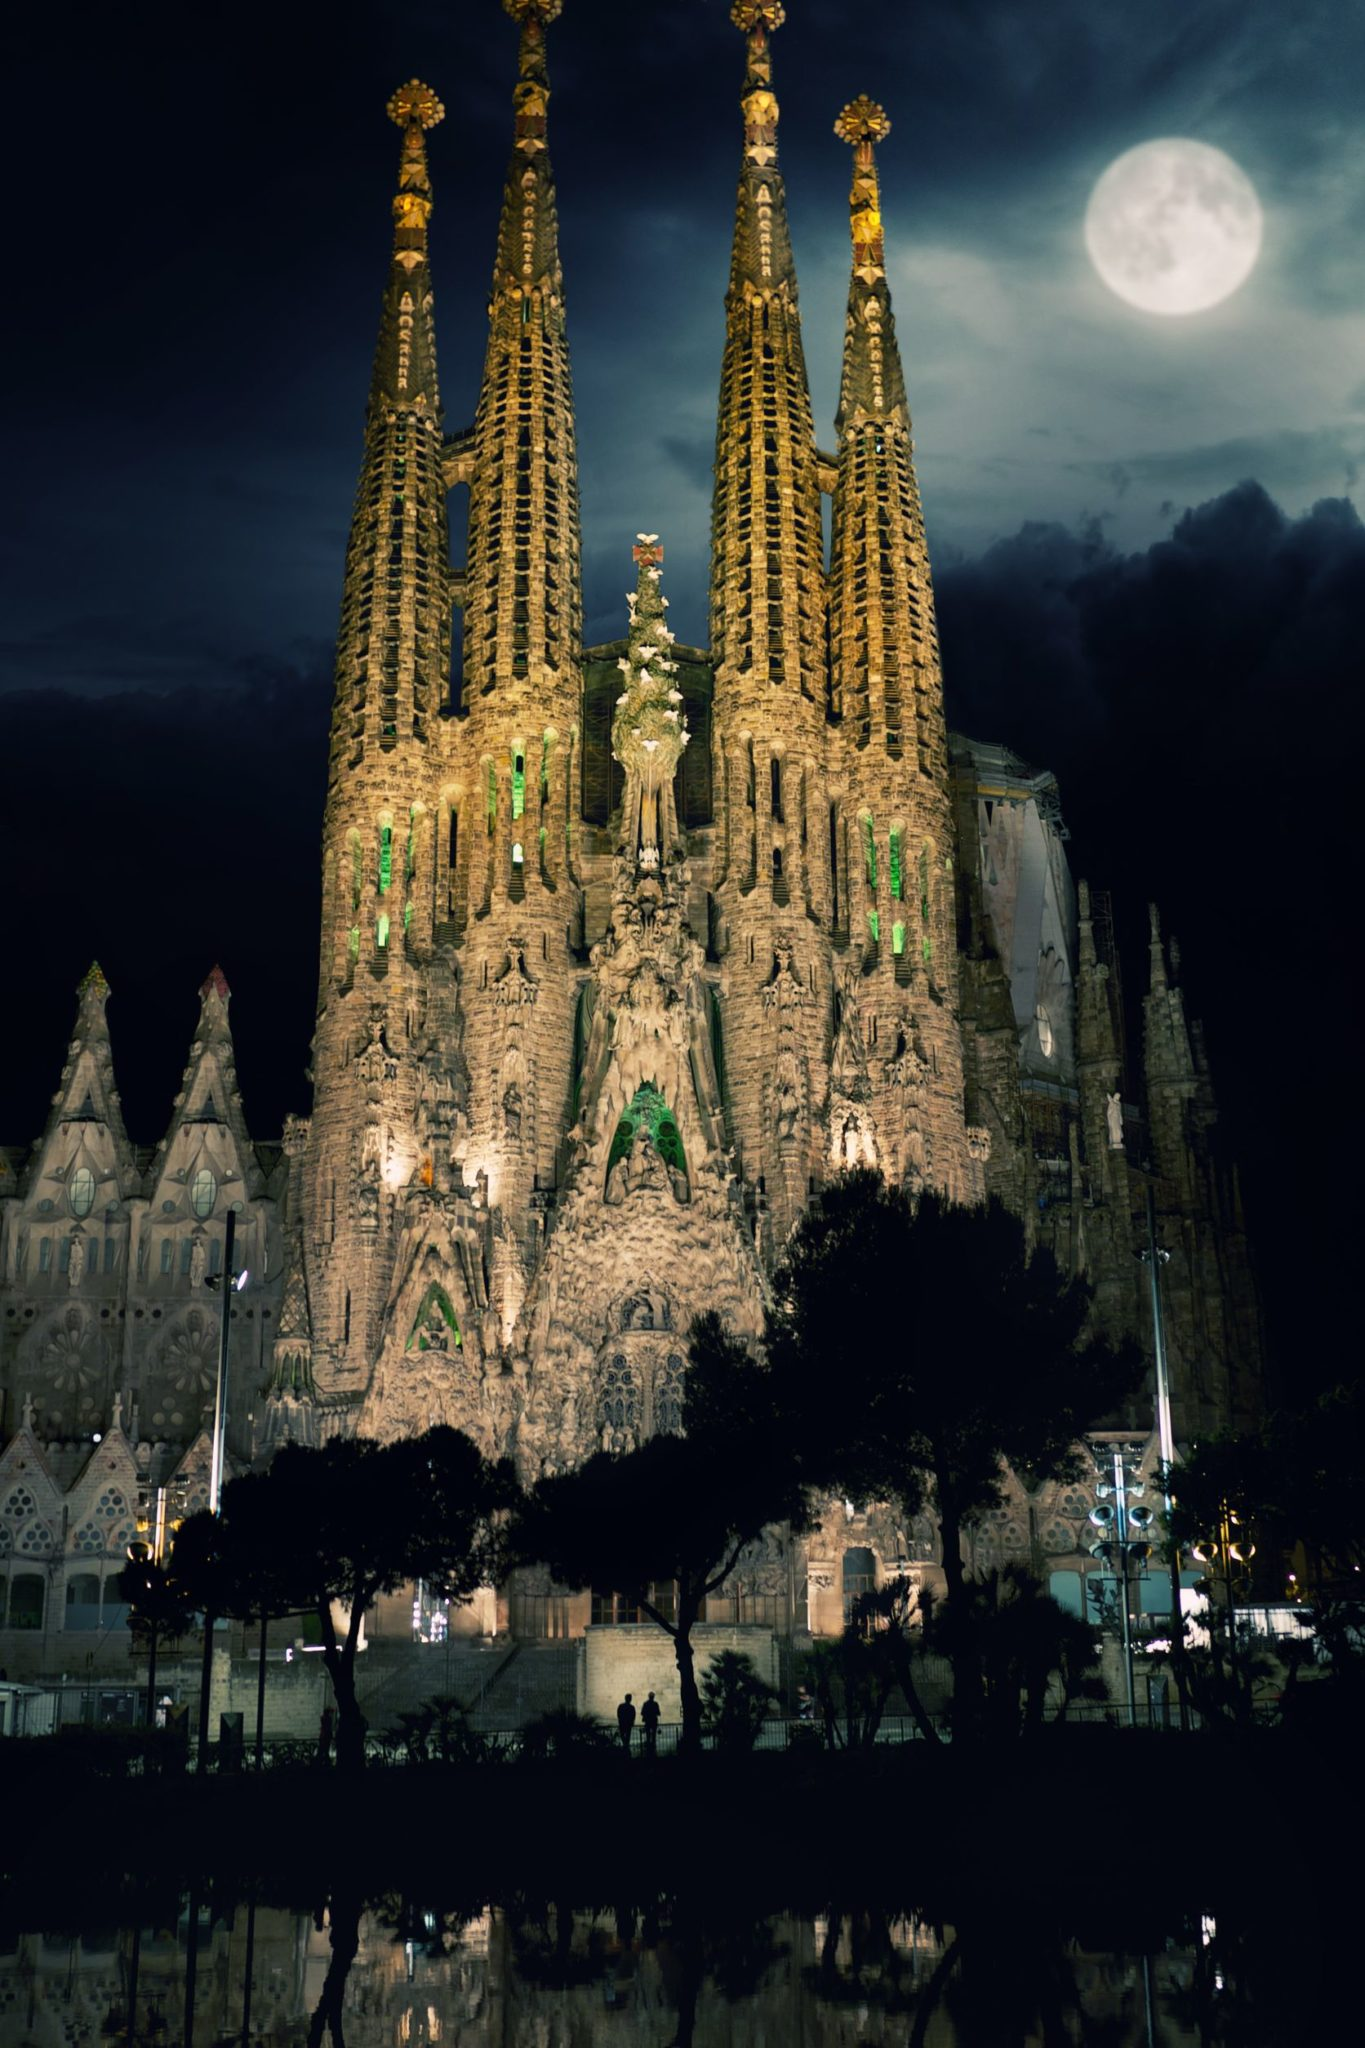 La-Sagrada-Familia-Cathedral-in-Barcelona-Spain